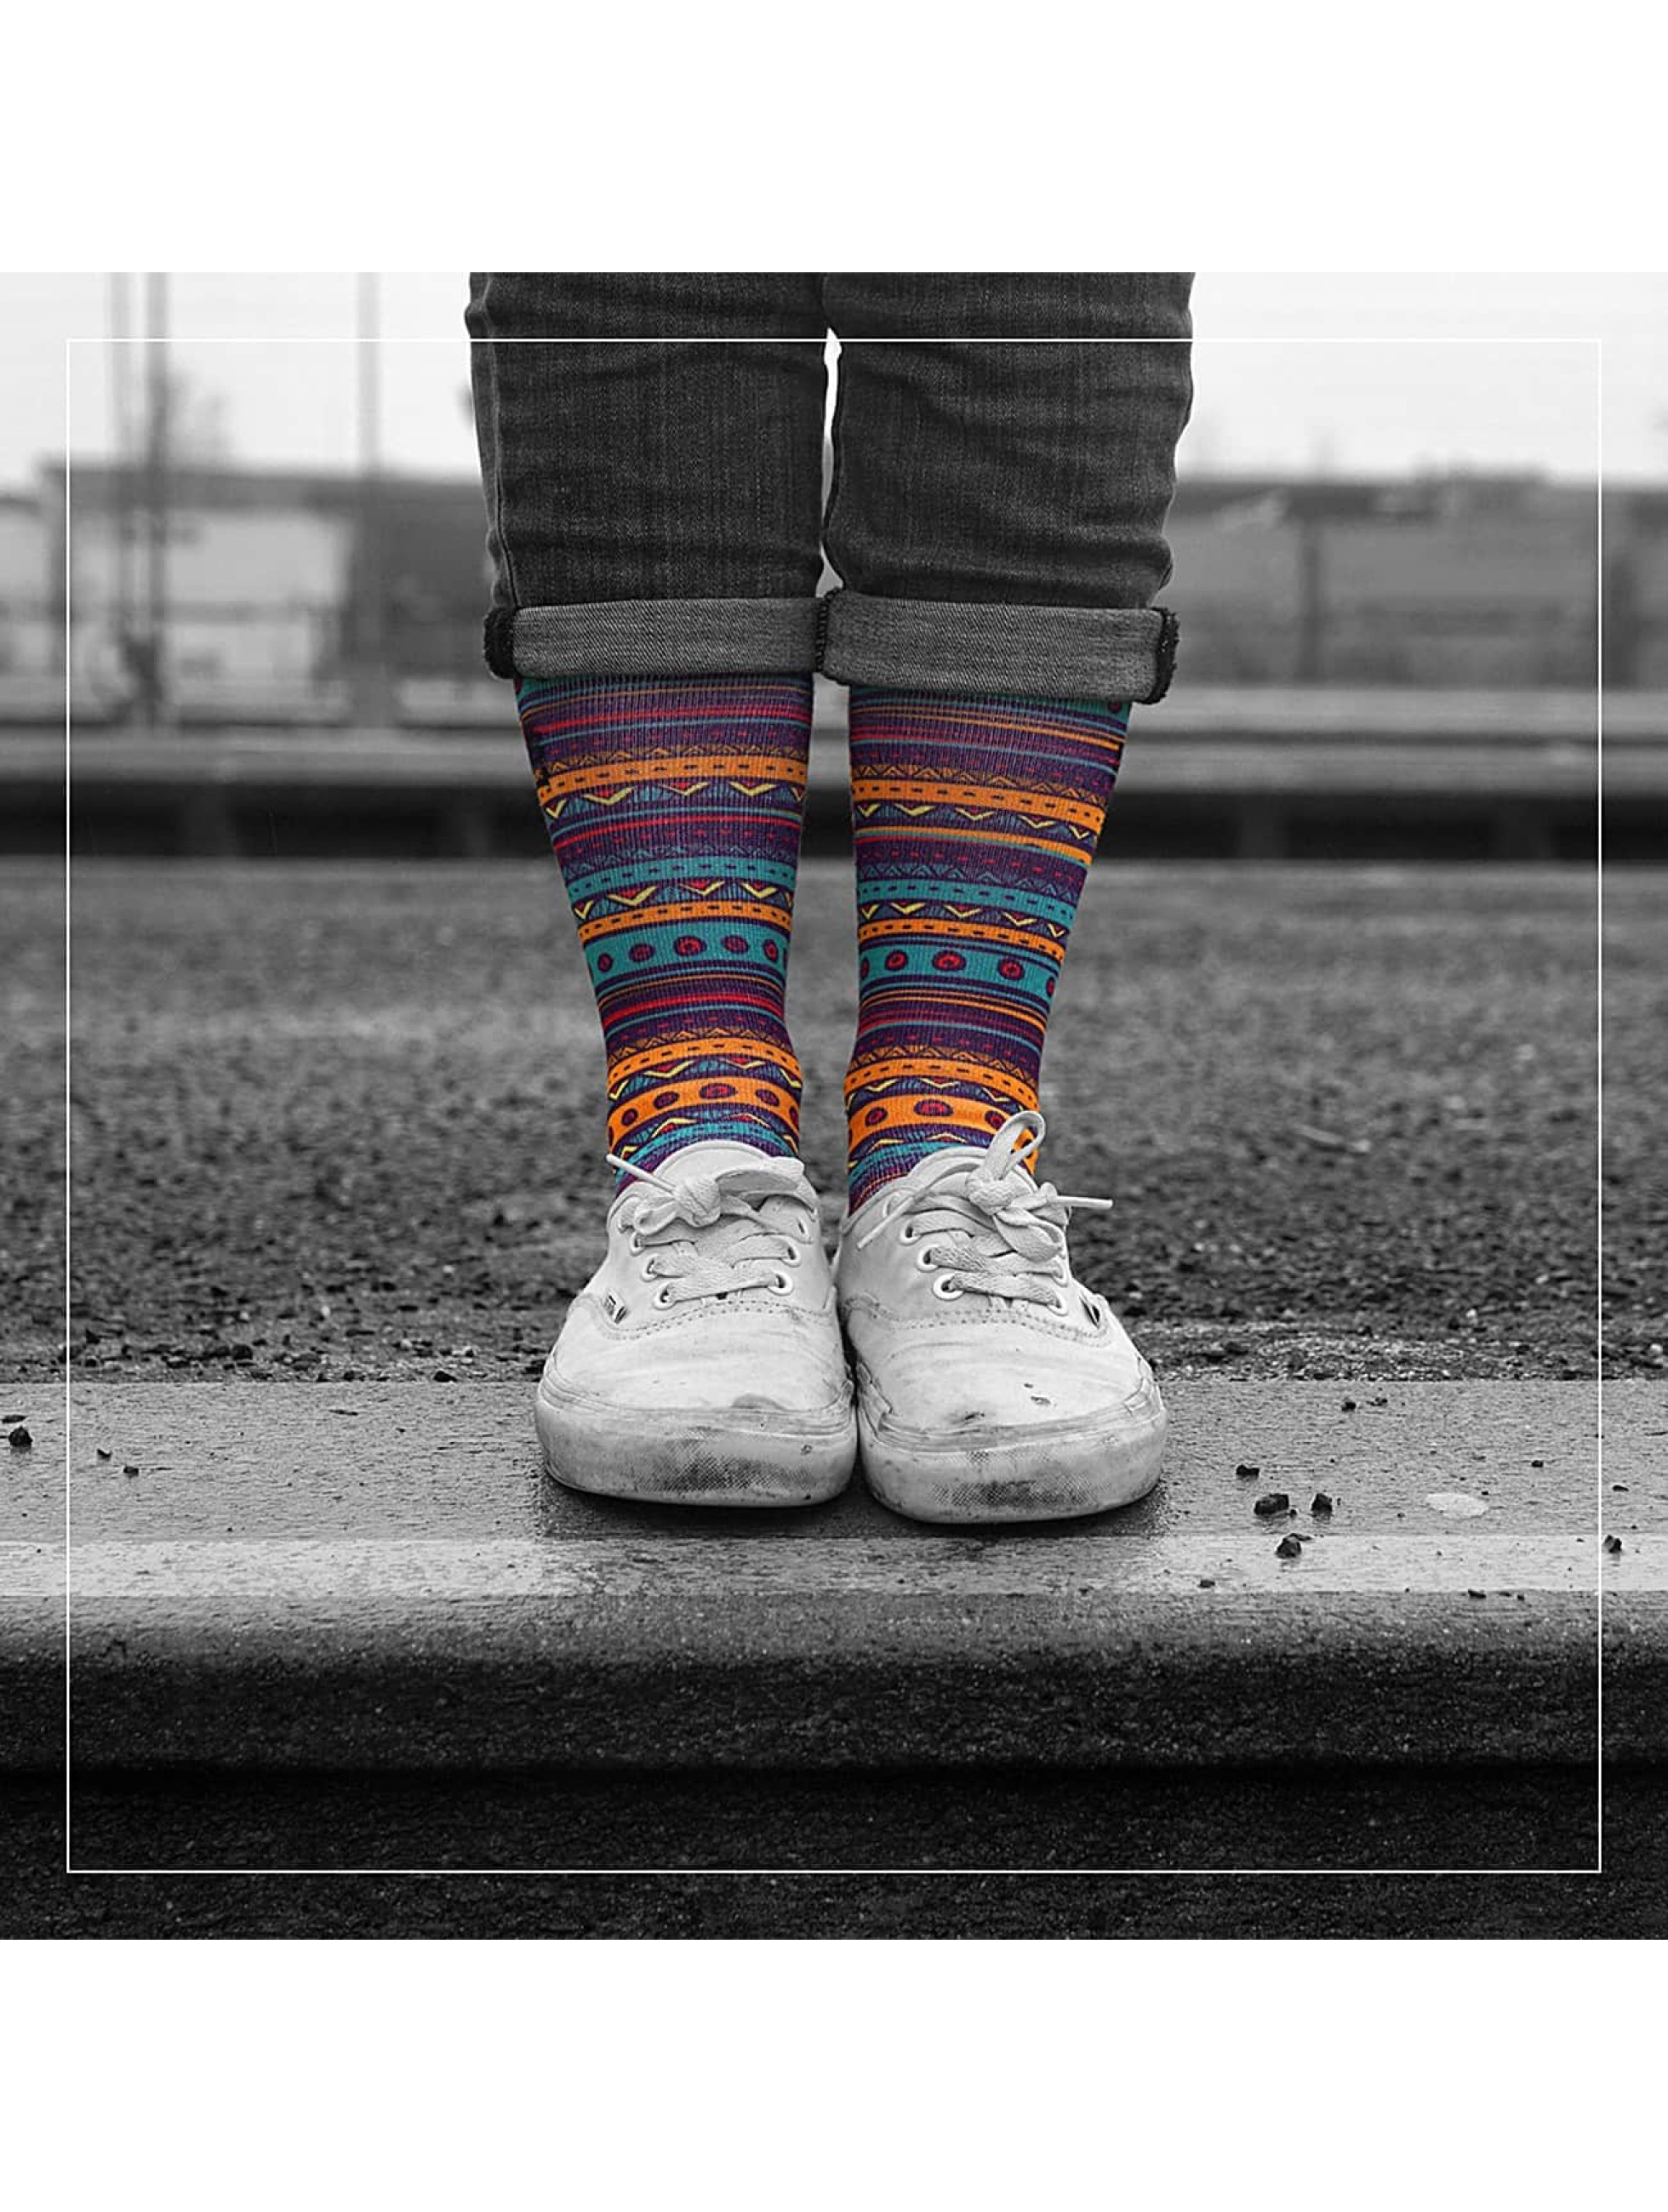 LUF SOX Socks La Paz colored